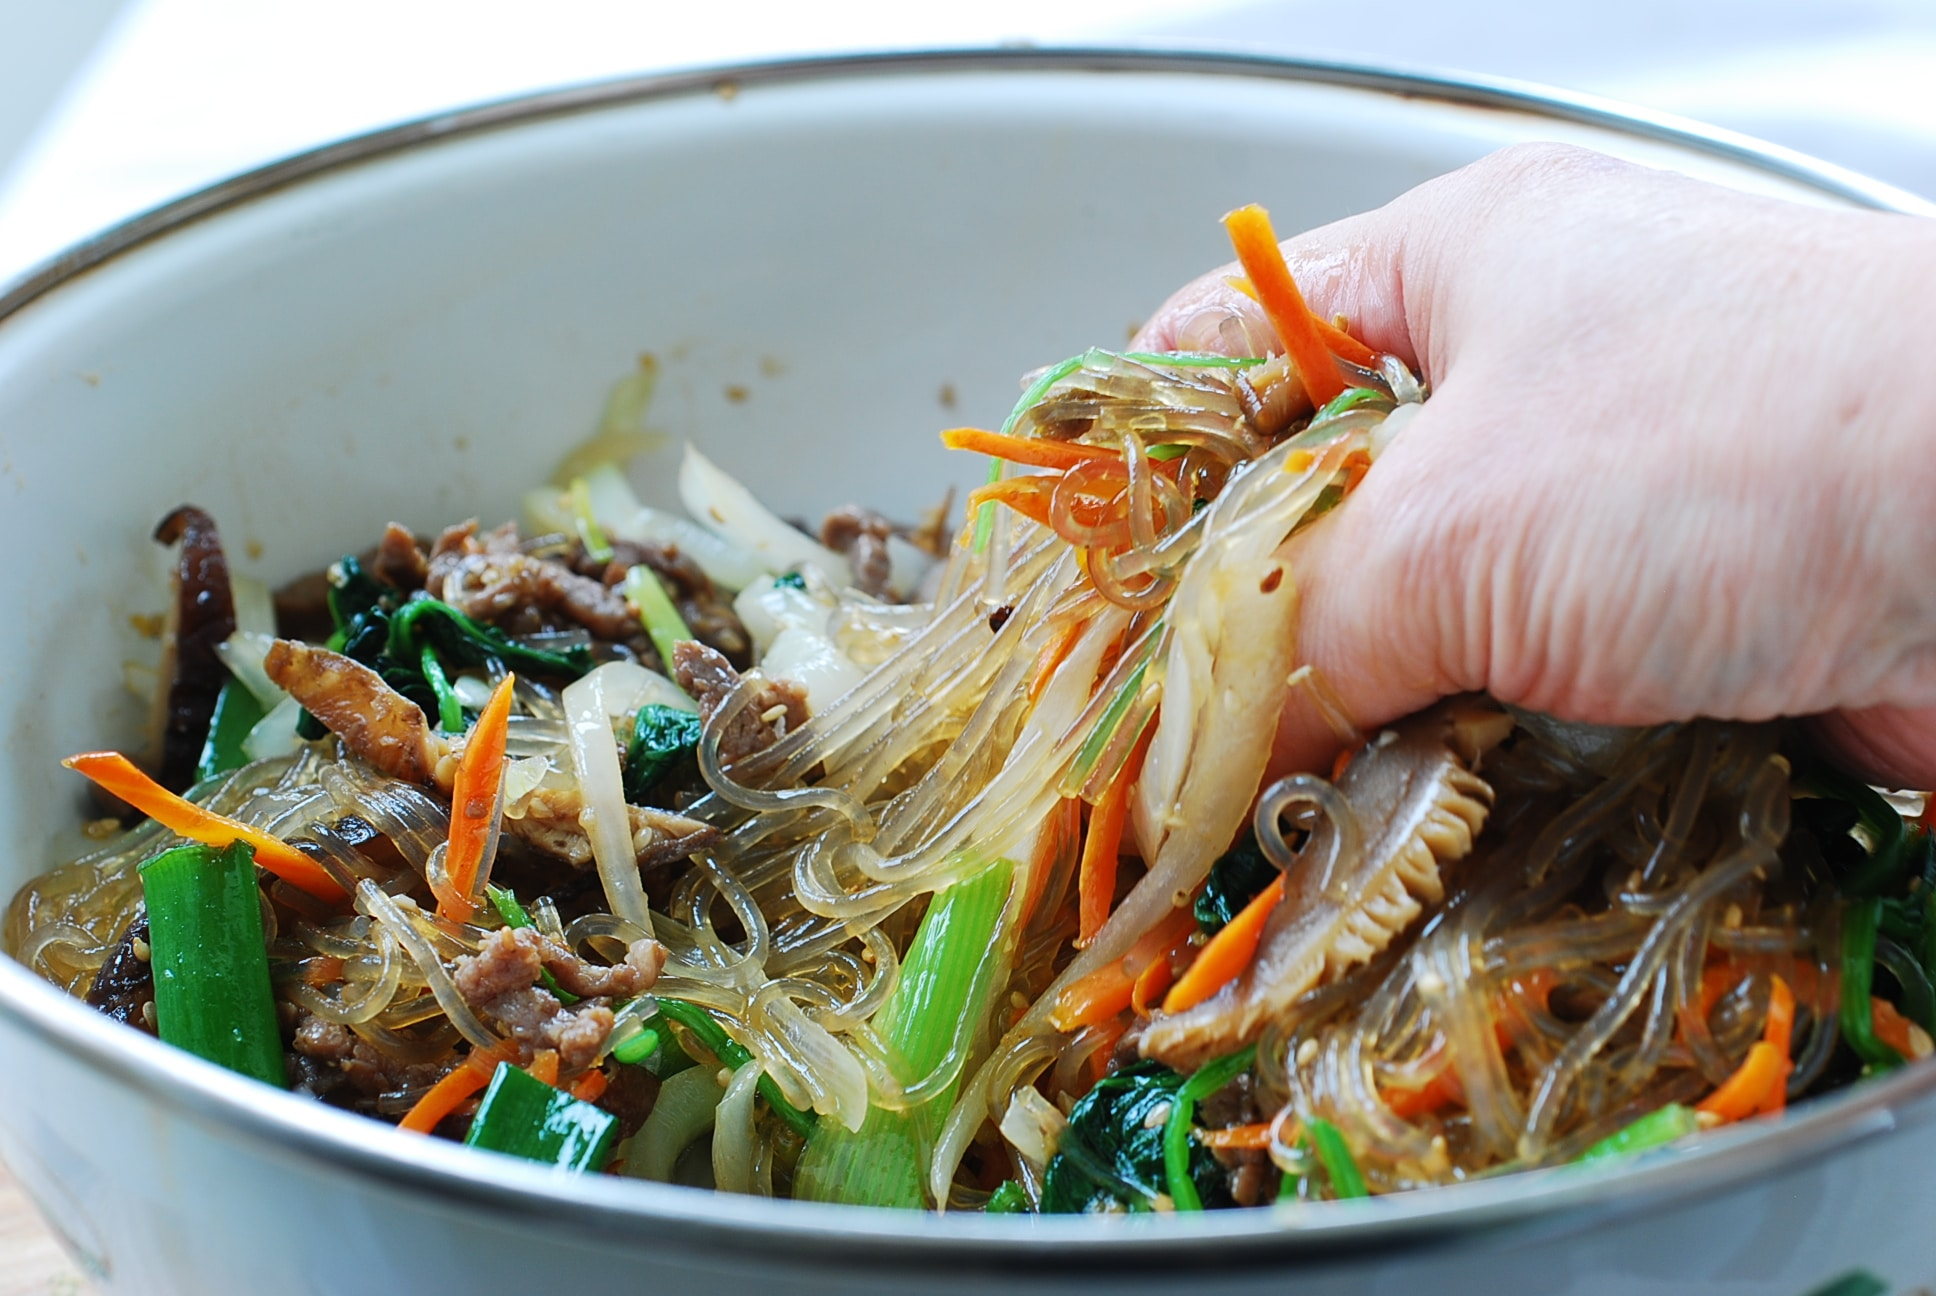 DSC 0988 1 - Japchae (Stir-Fried Starch Noodles with Beef and Vegetables)